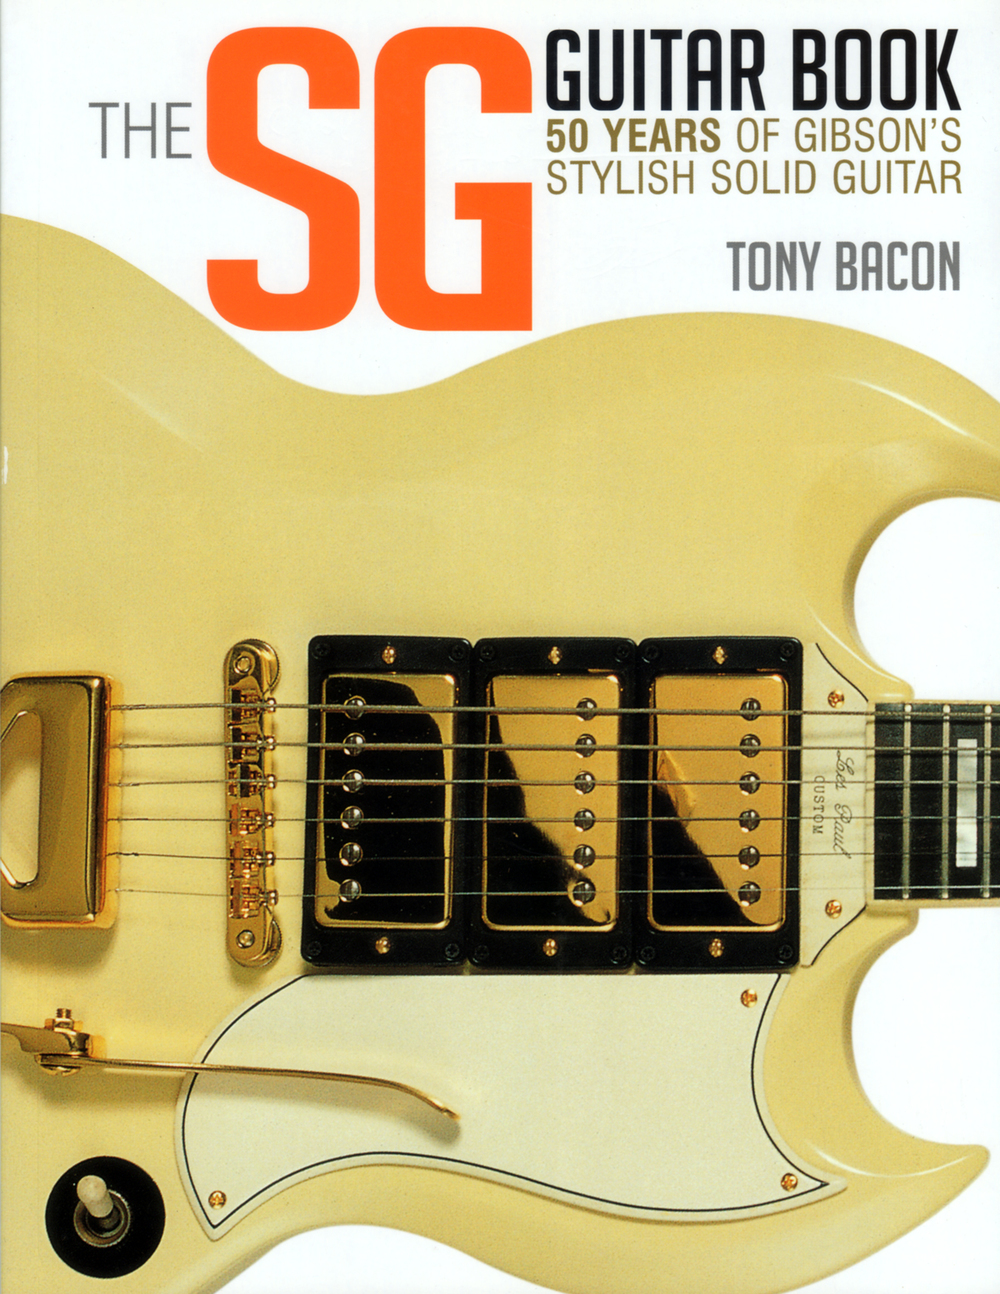 The SG Guitar Book: 50 Years of Gibson's Stylis...